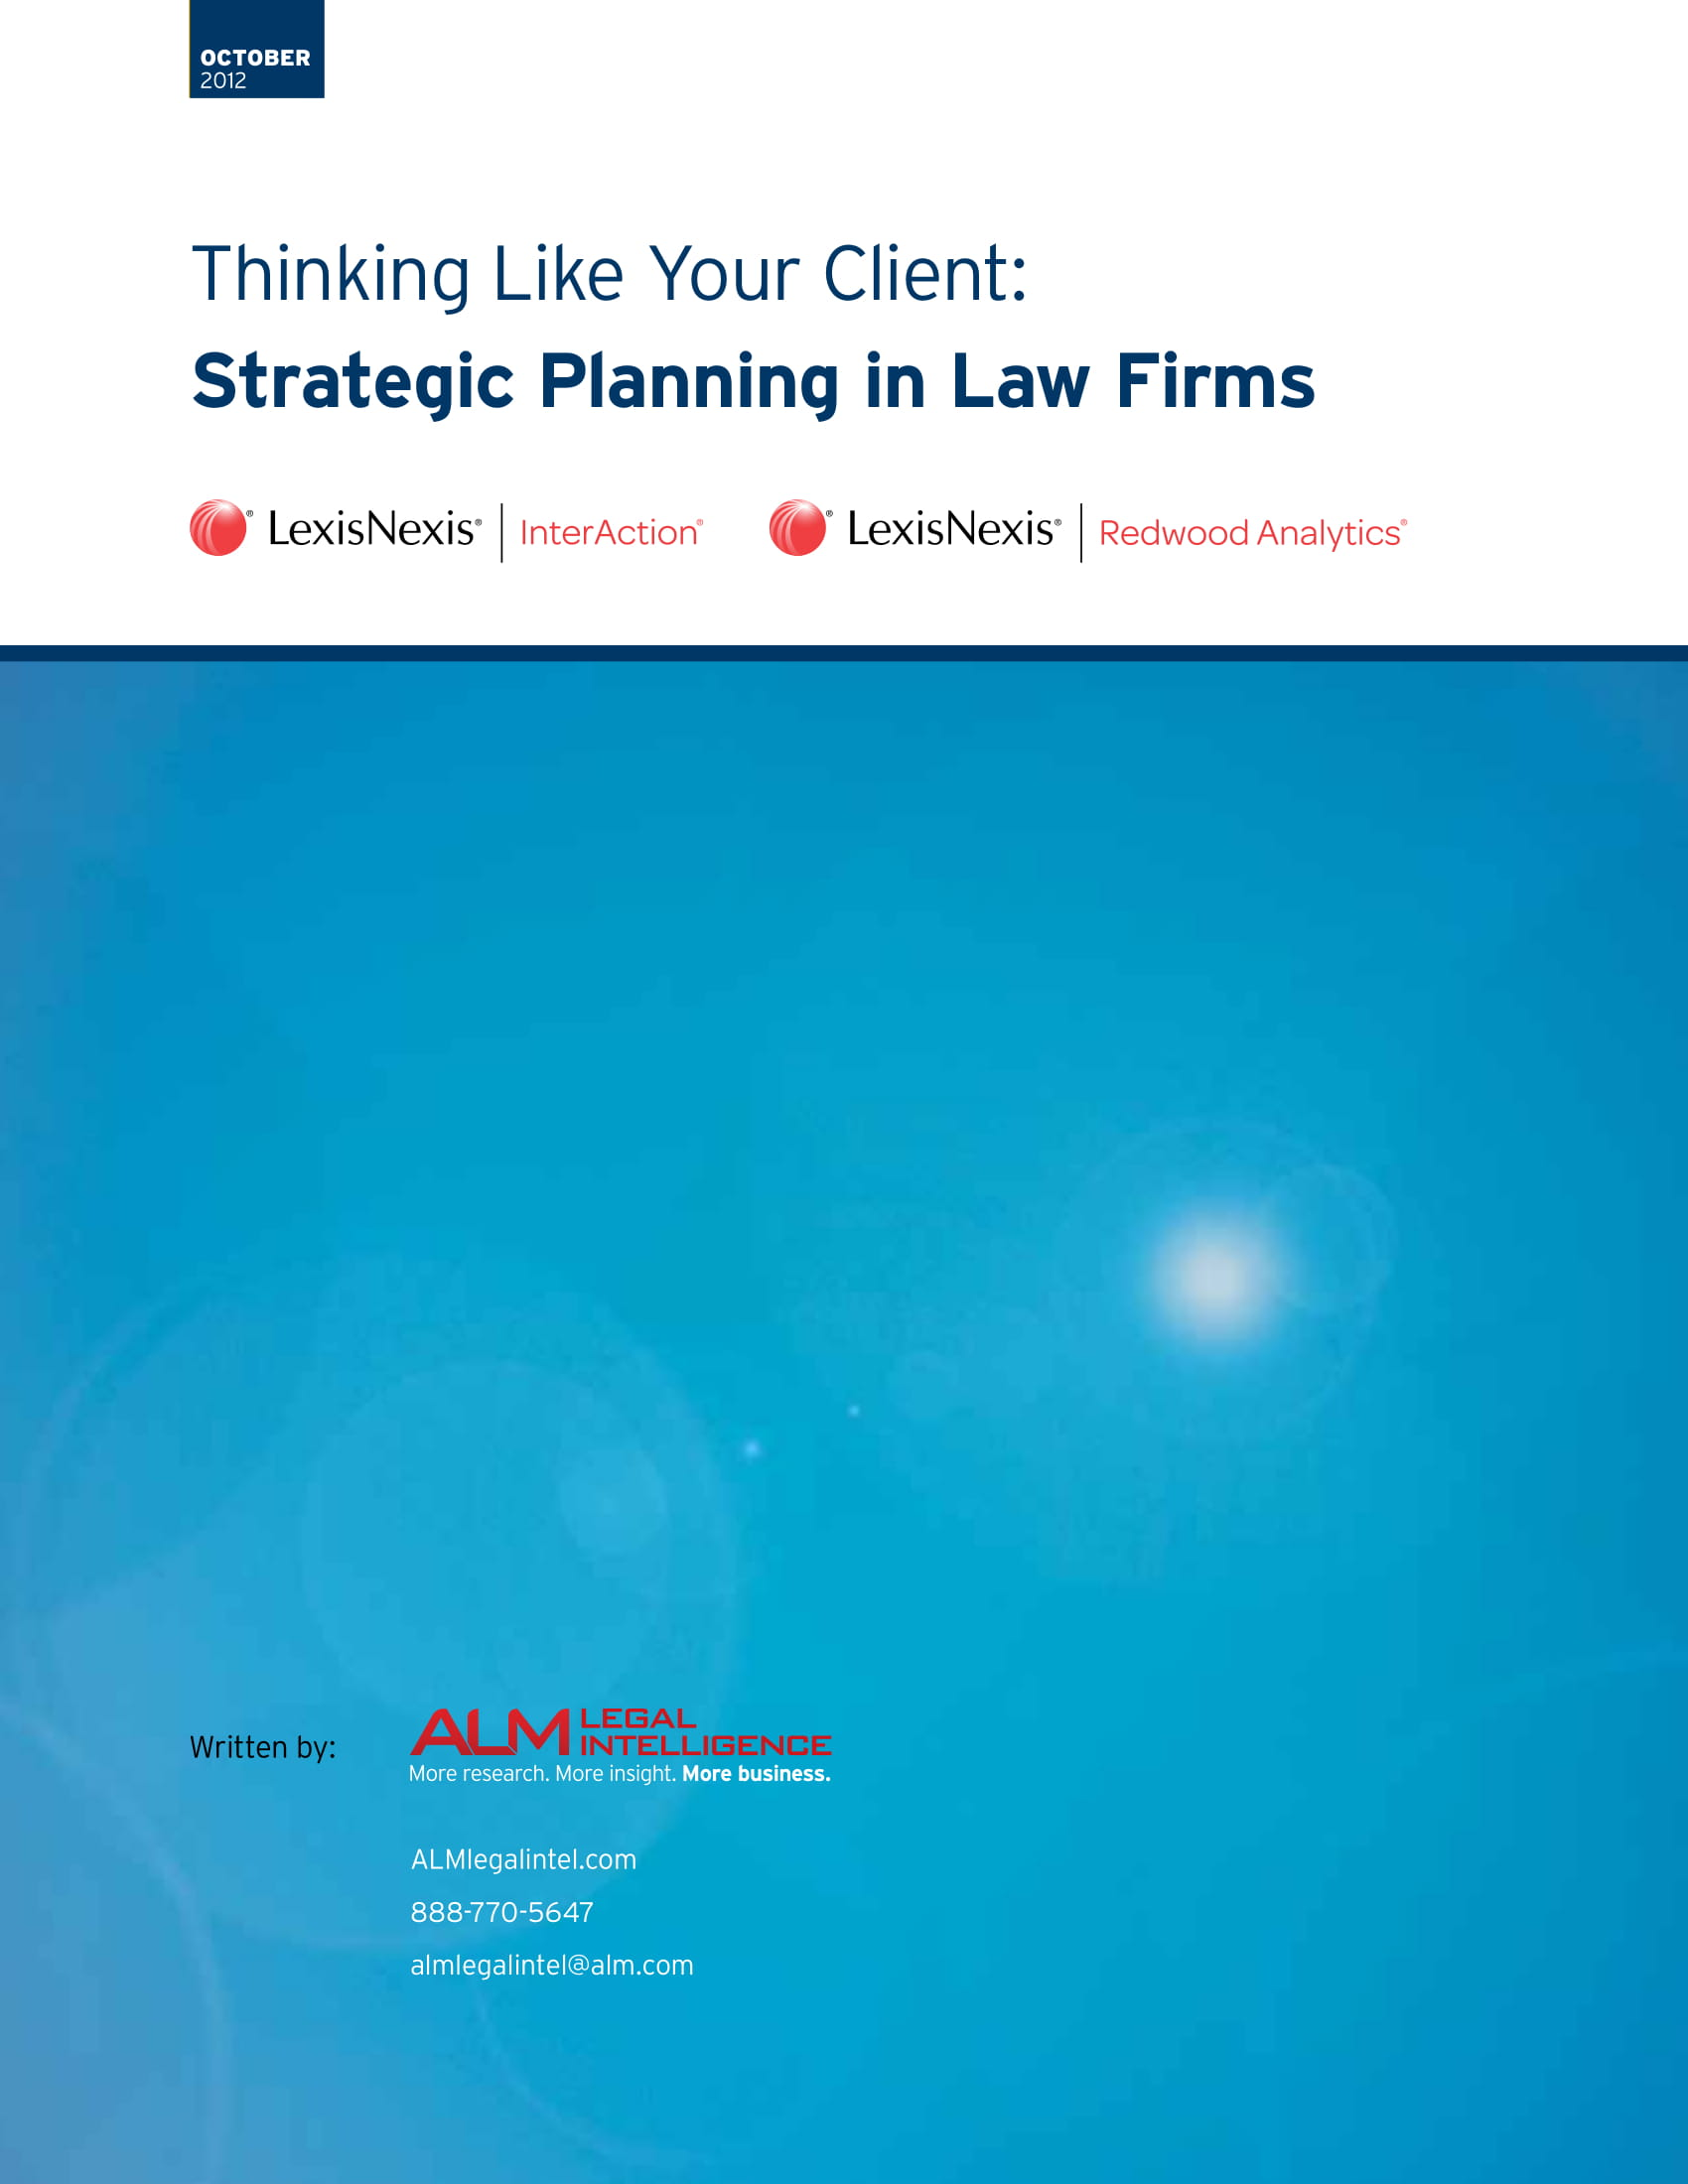 legal strategic planning in law firms example 01